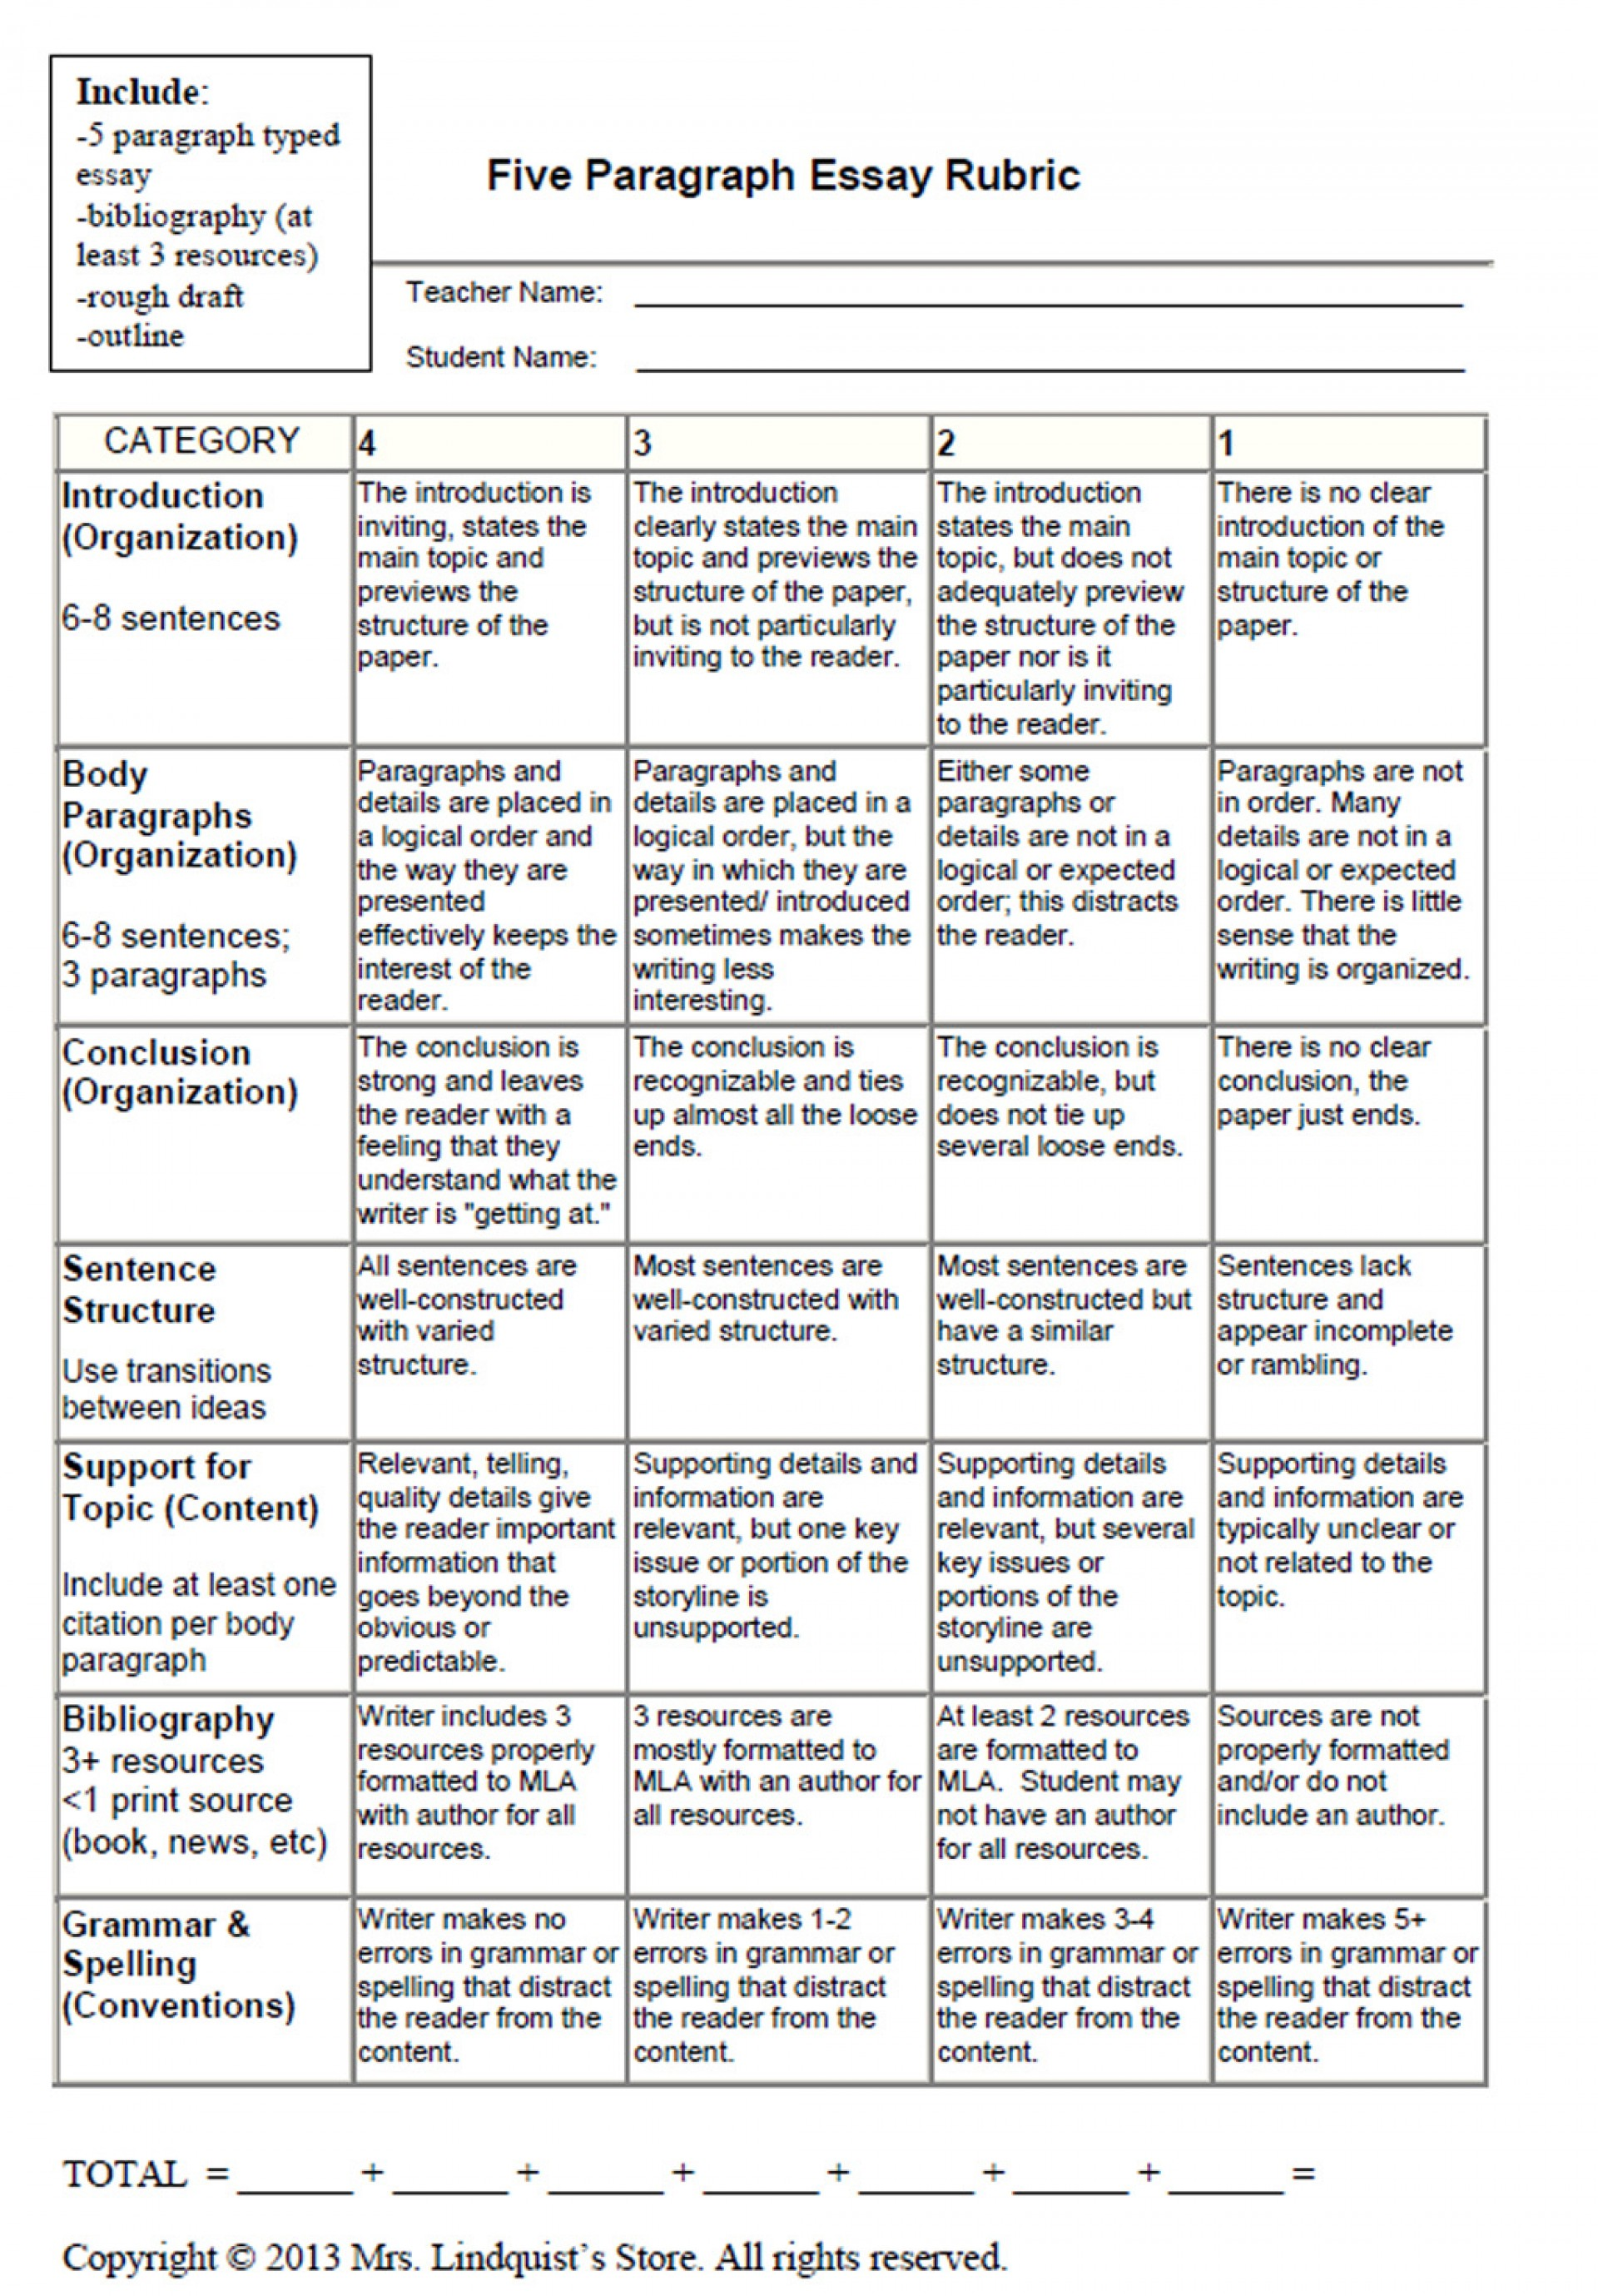 002 Graphic20organizers20and20rubrics20for20writing04 Large Expository Essay Rubric Awesome 5th Grade Informative Writing 4 7th 1920